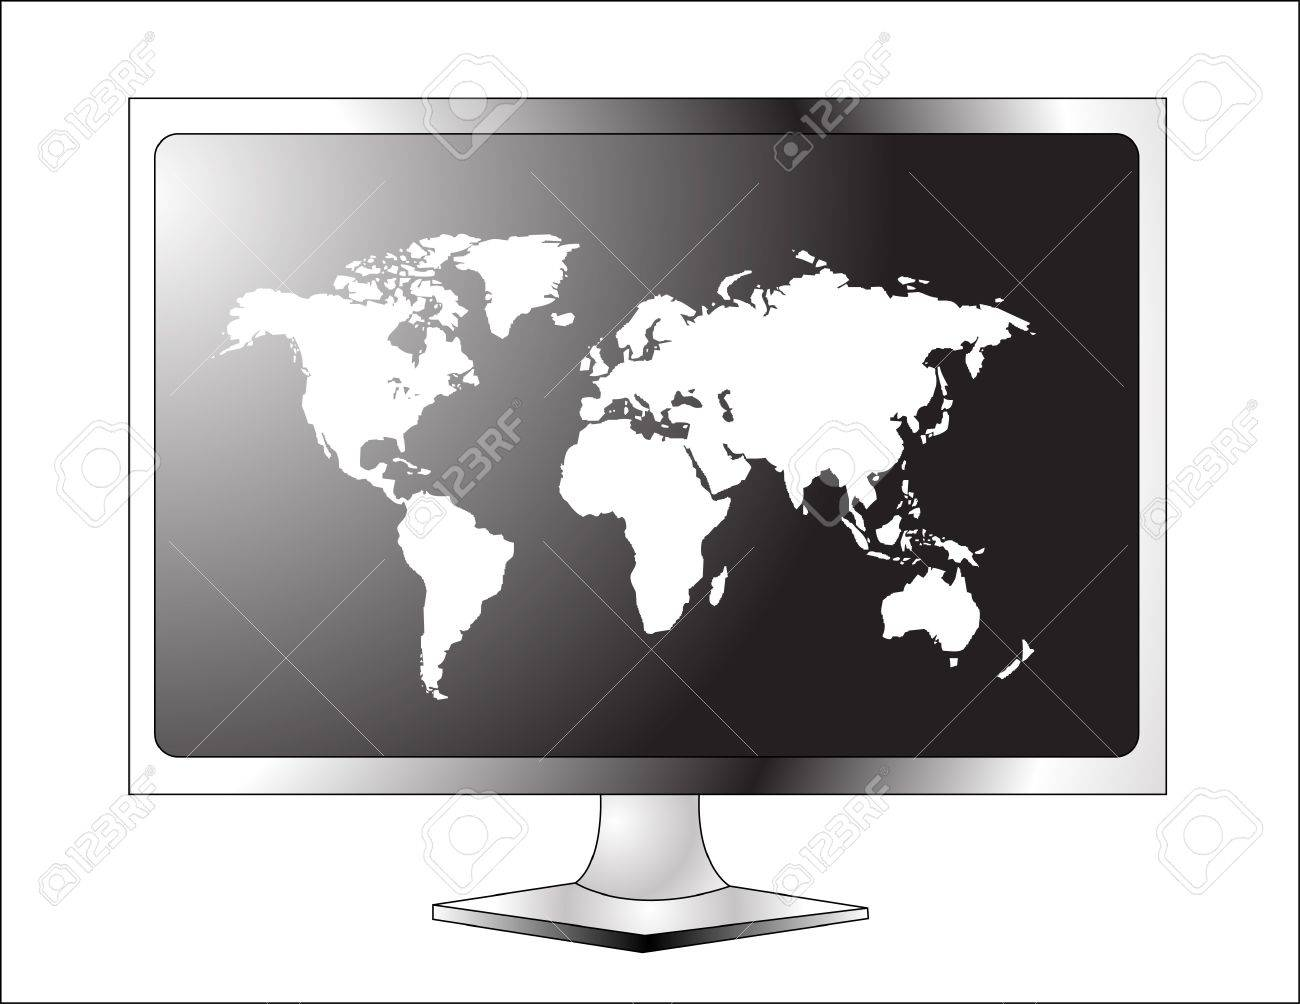 Plasma LCD TV with world map - 14347944